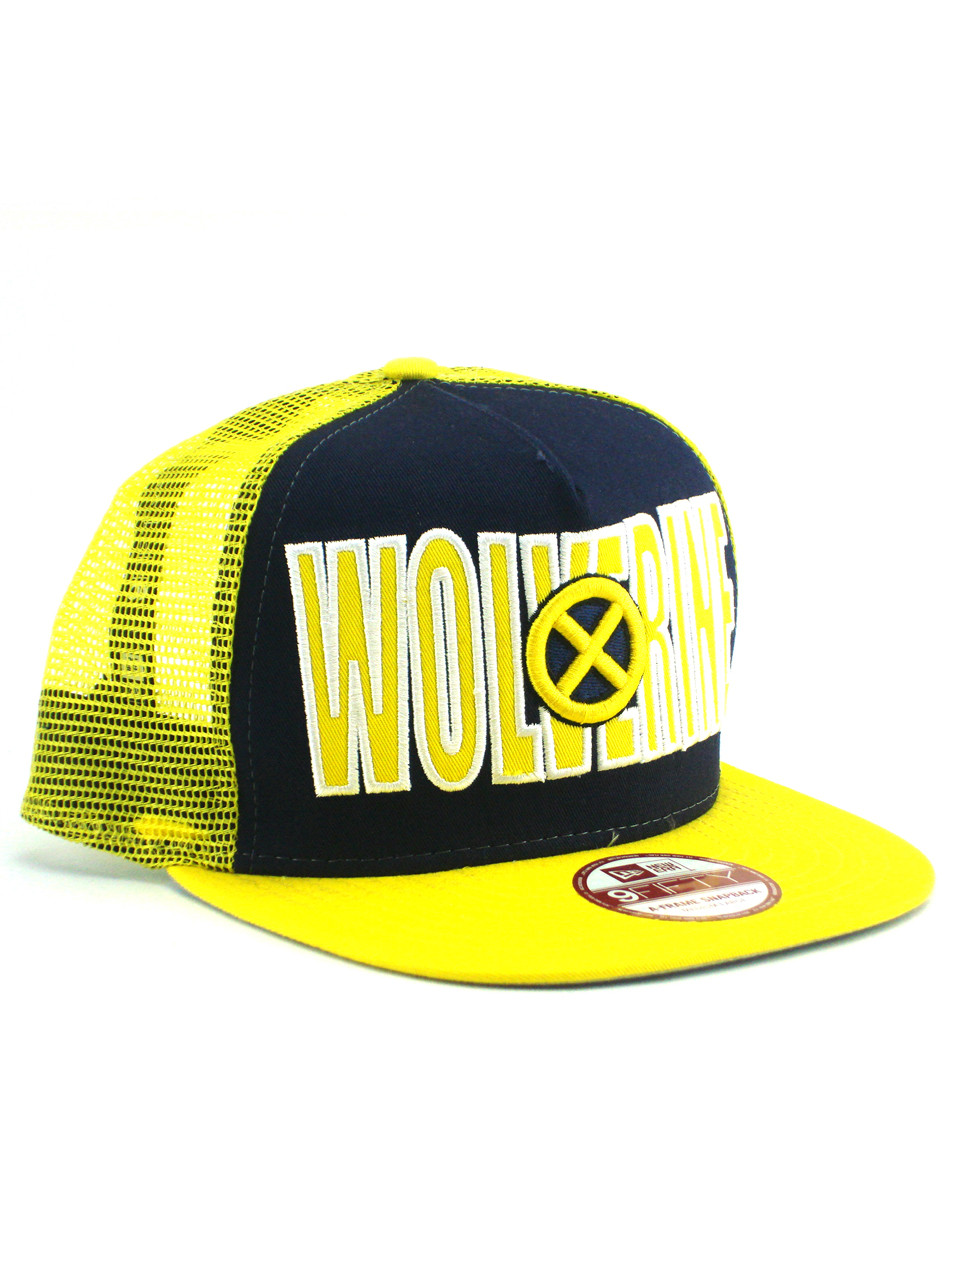 440cf6f29c157 New Era Wolverine Mesh 9fifty A-Frame Snapback Adjustable Hat View 1